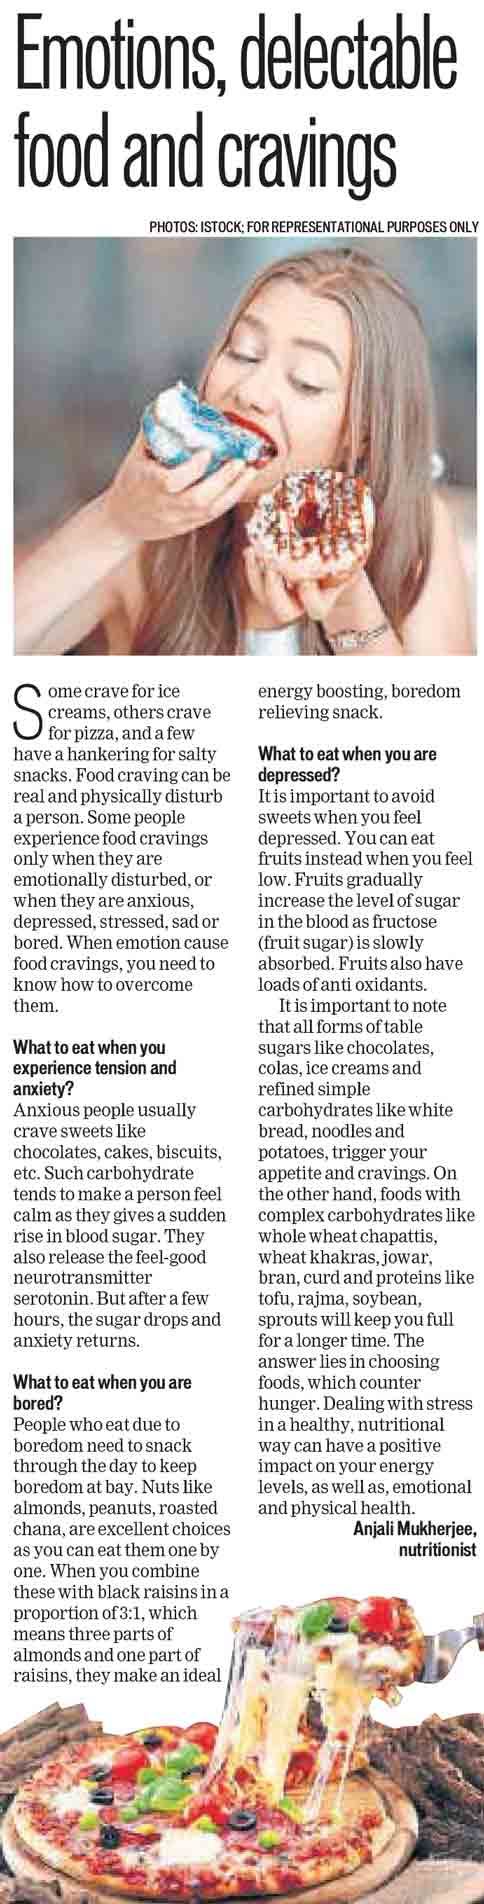 Emotions, delectable food and cravings